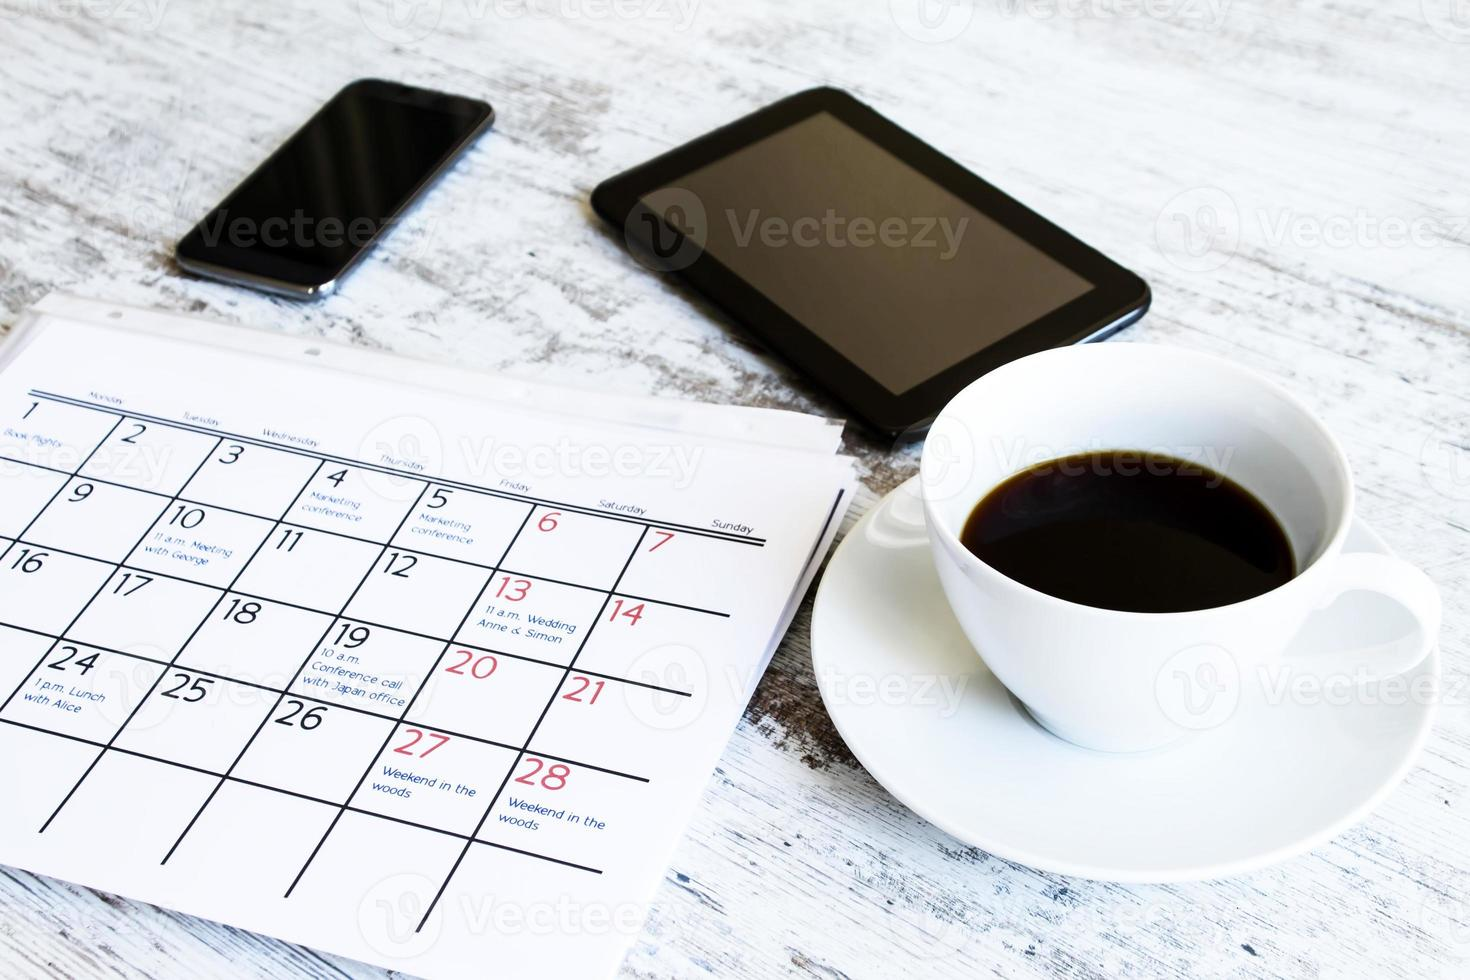 Checking monthly activities in the calendar photo